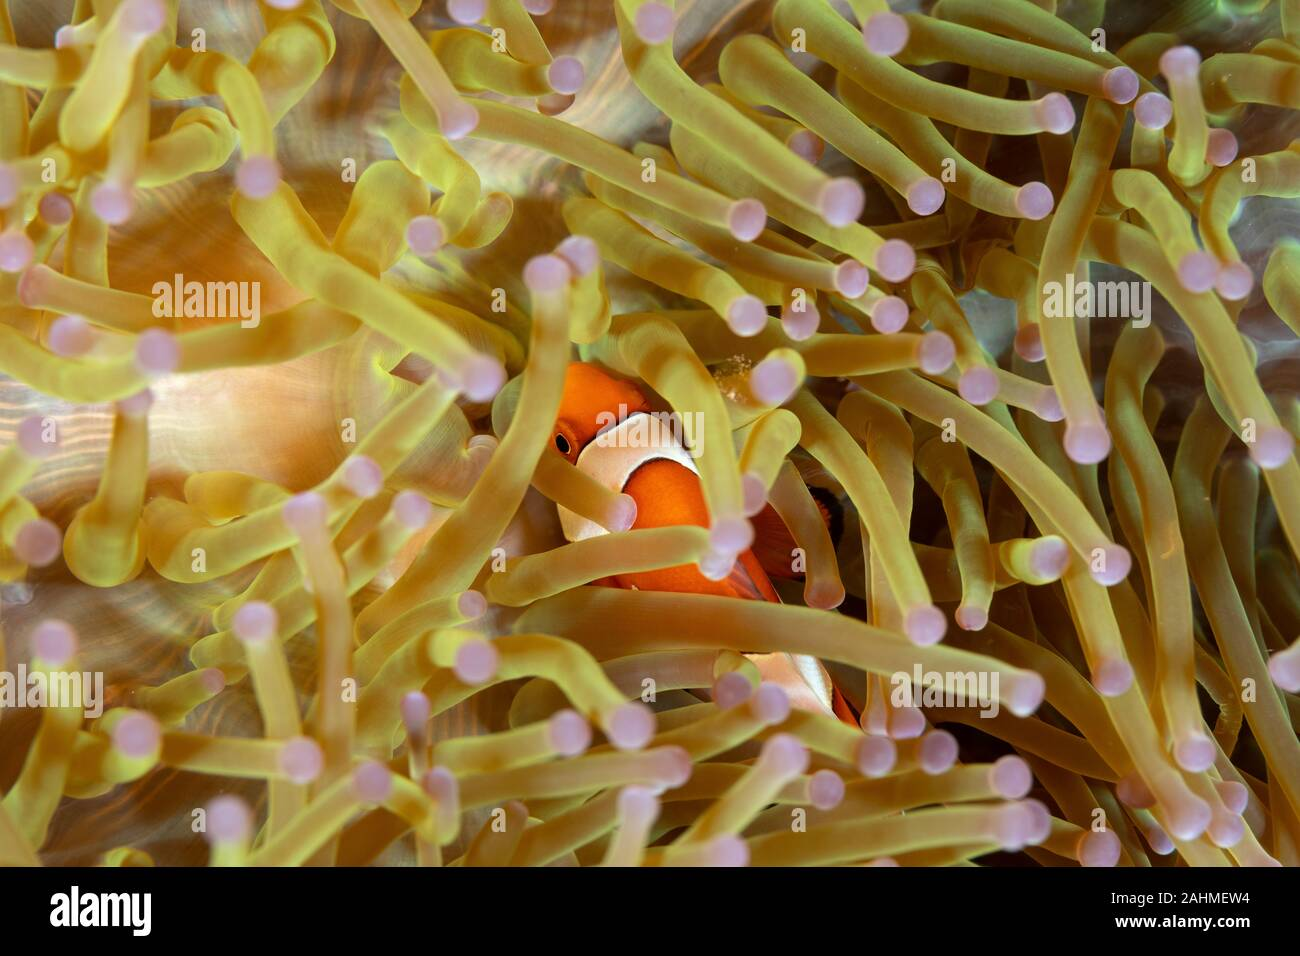 Clownfish or anemonefish are fishes from the subfamily Amphiprioninae in the family Pomacentridae Stock Photo